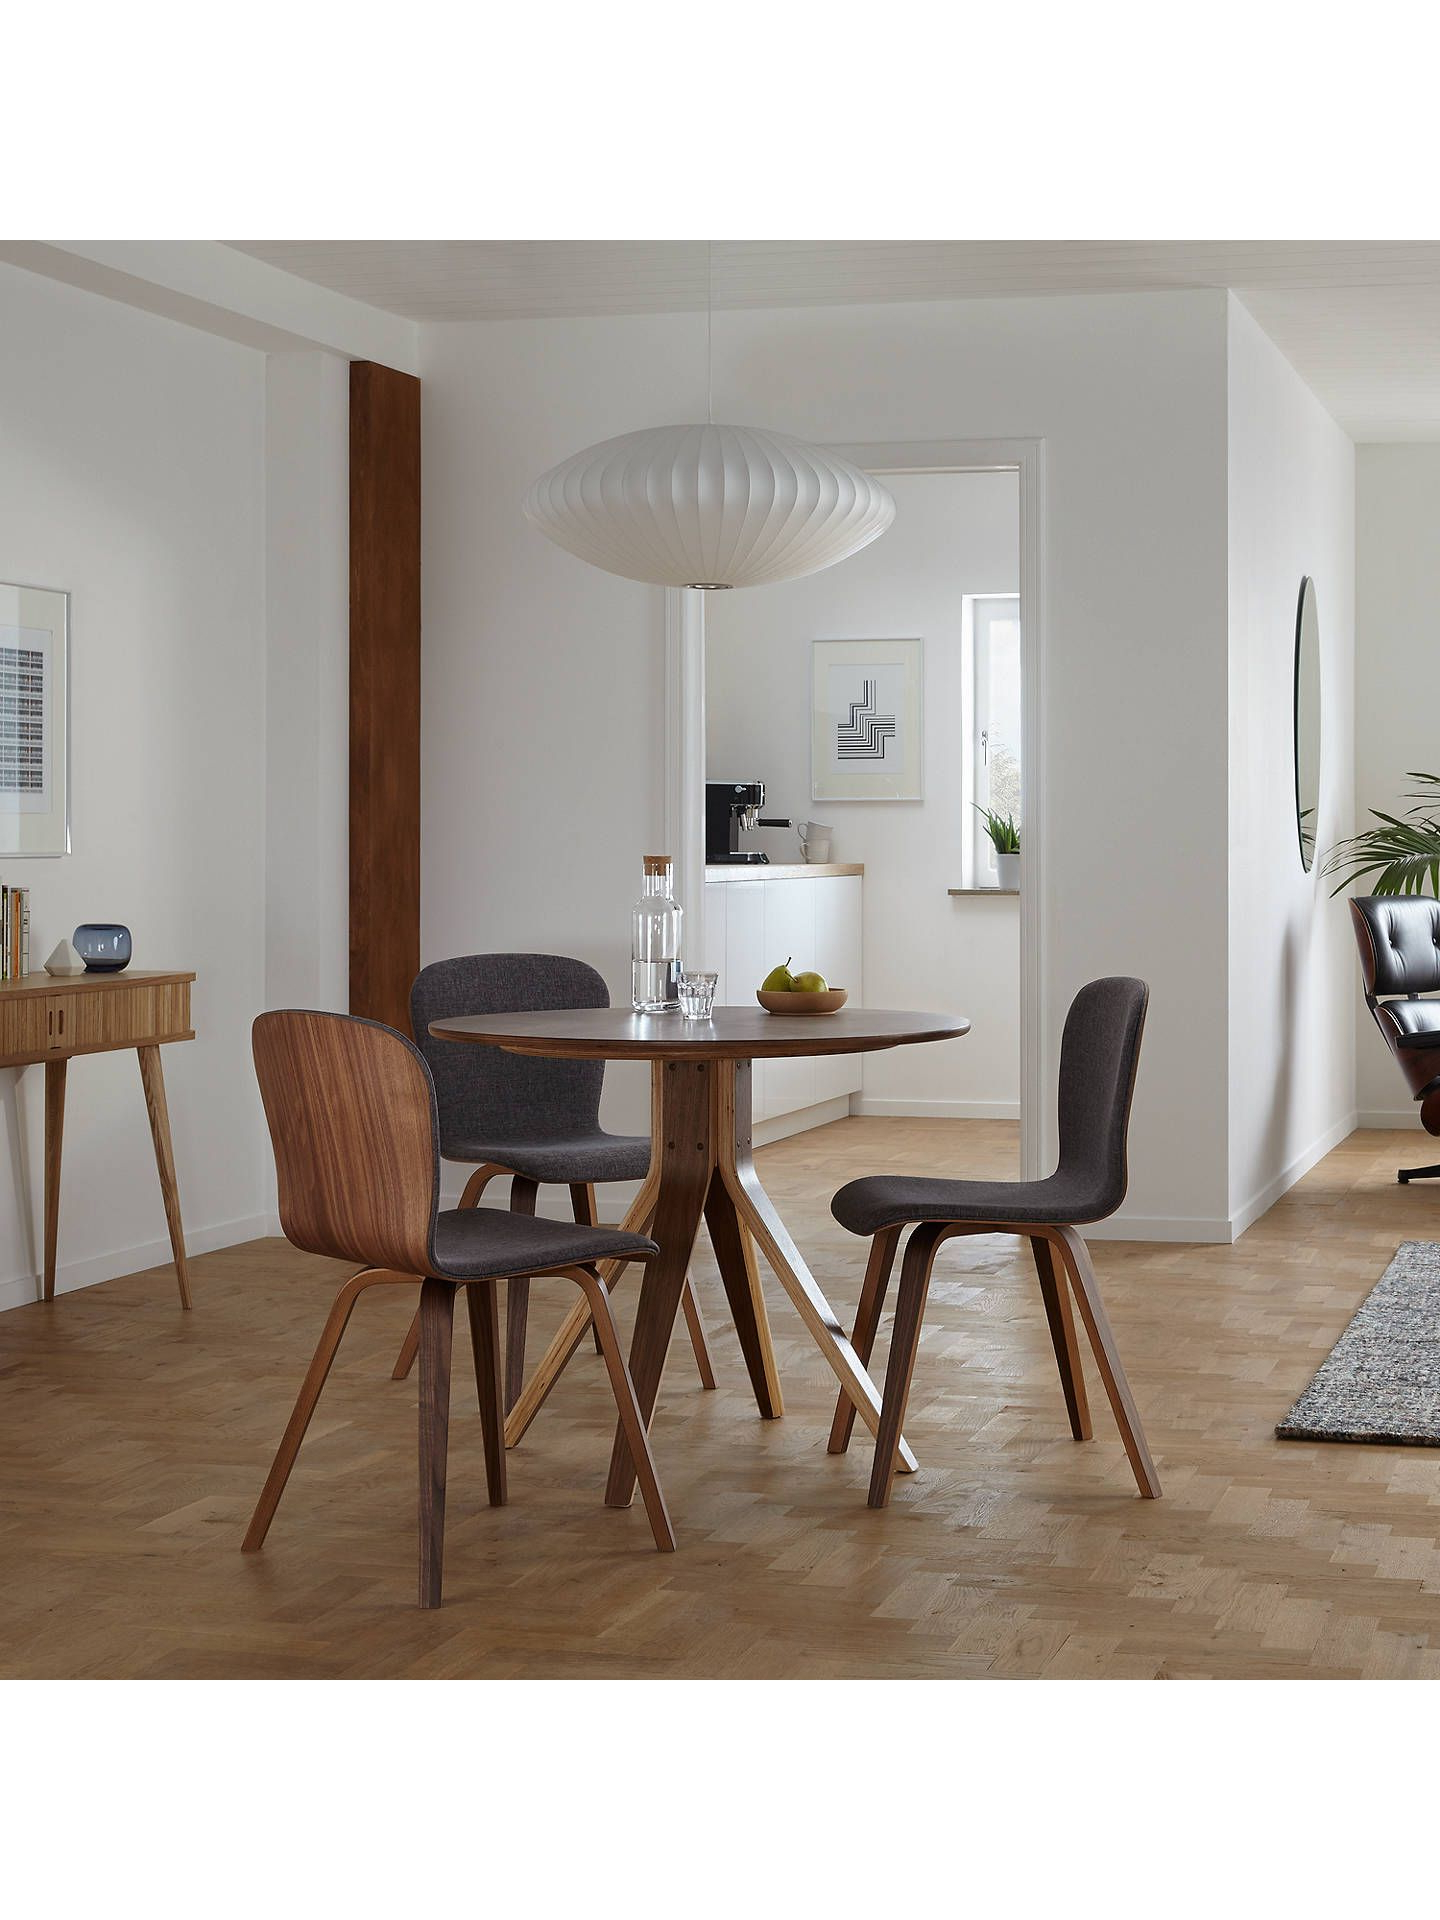 Housejohn Lewis Radar 4 Seater Round Dining Table, Walnut In With Regard To 2017 John 4 Piece Dining Sets (View 7 of 20)